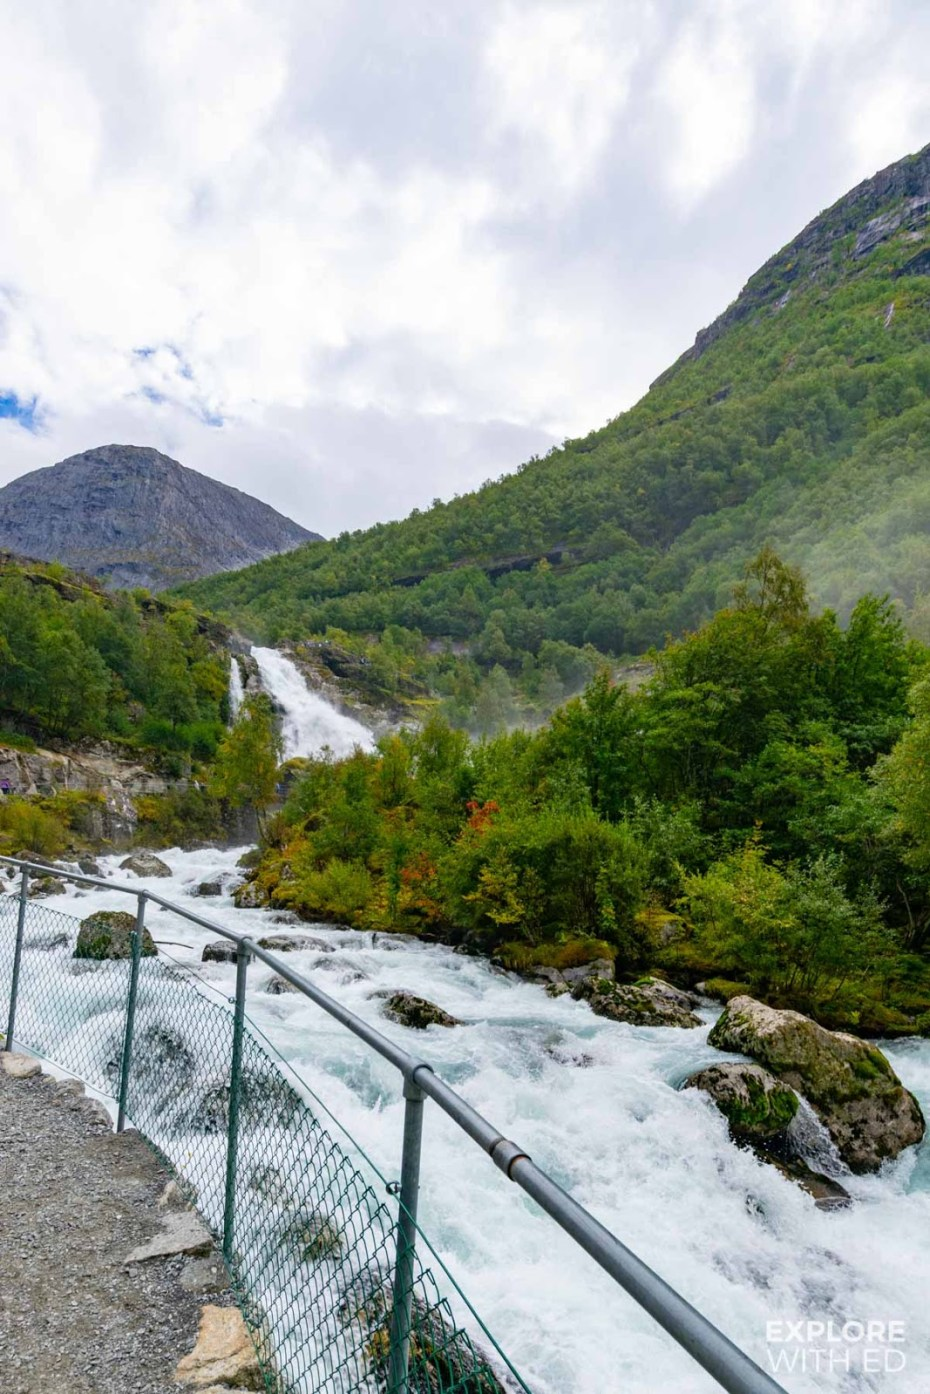 The walking route to Briksdal along the river